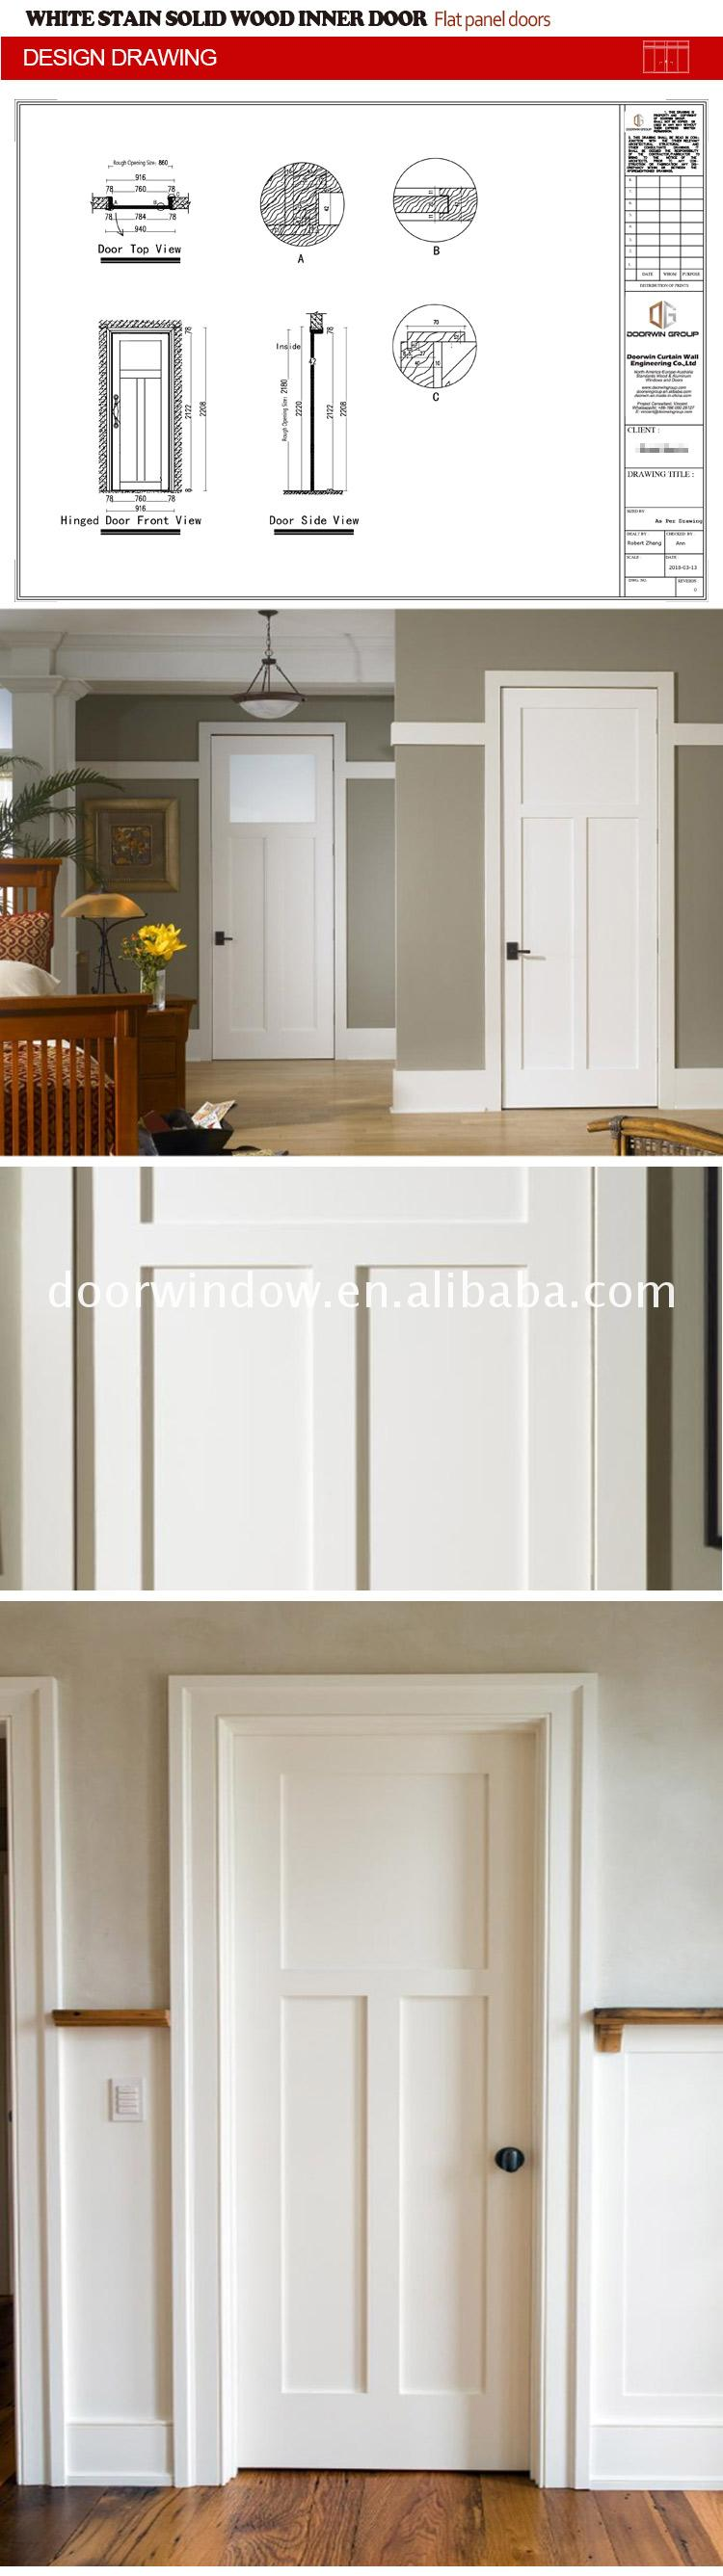 Factory direct price contemporary closet doors for bedrooms french frosted